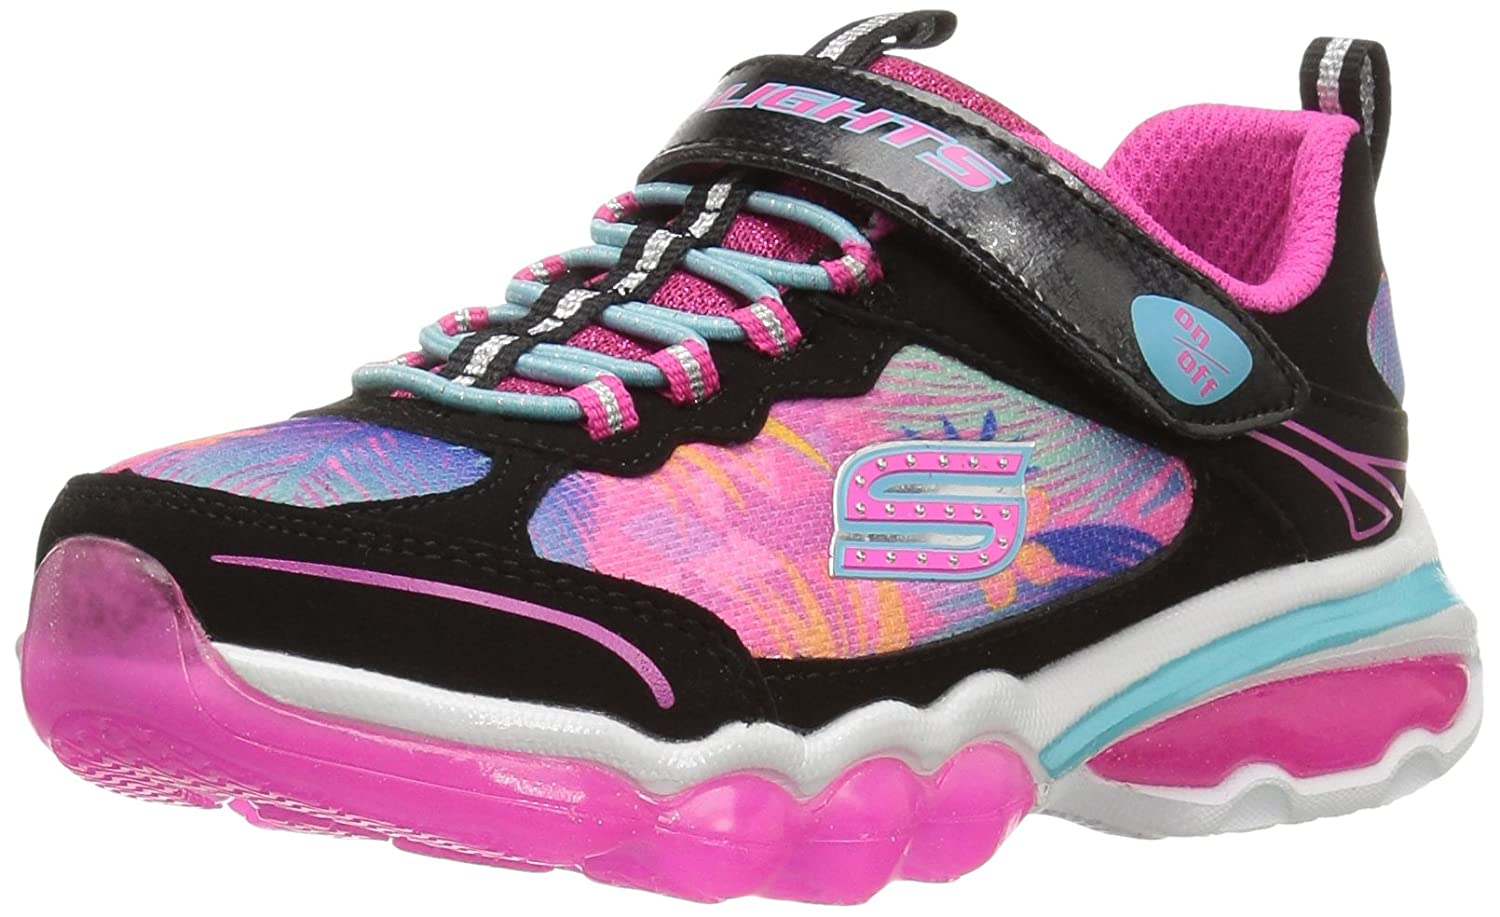 Skechers Kids Girls S Lights Light It up Sneaker